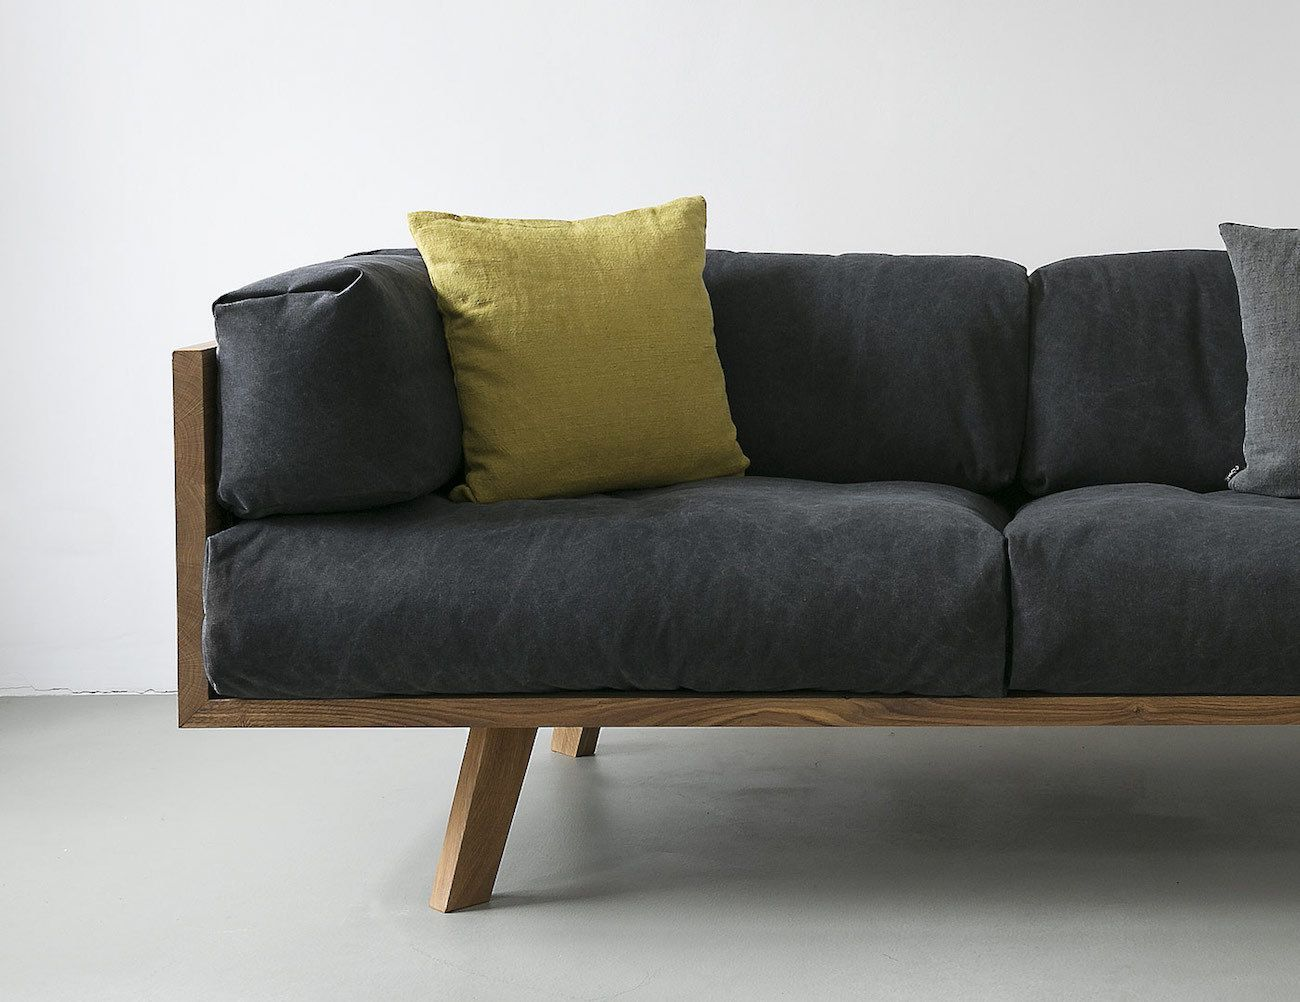 As the name suggests this modern and minimalistic sofa is made from solid oak wood